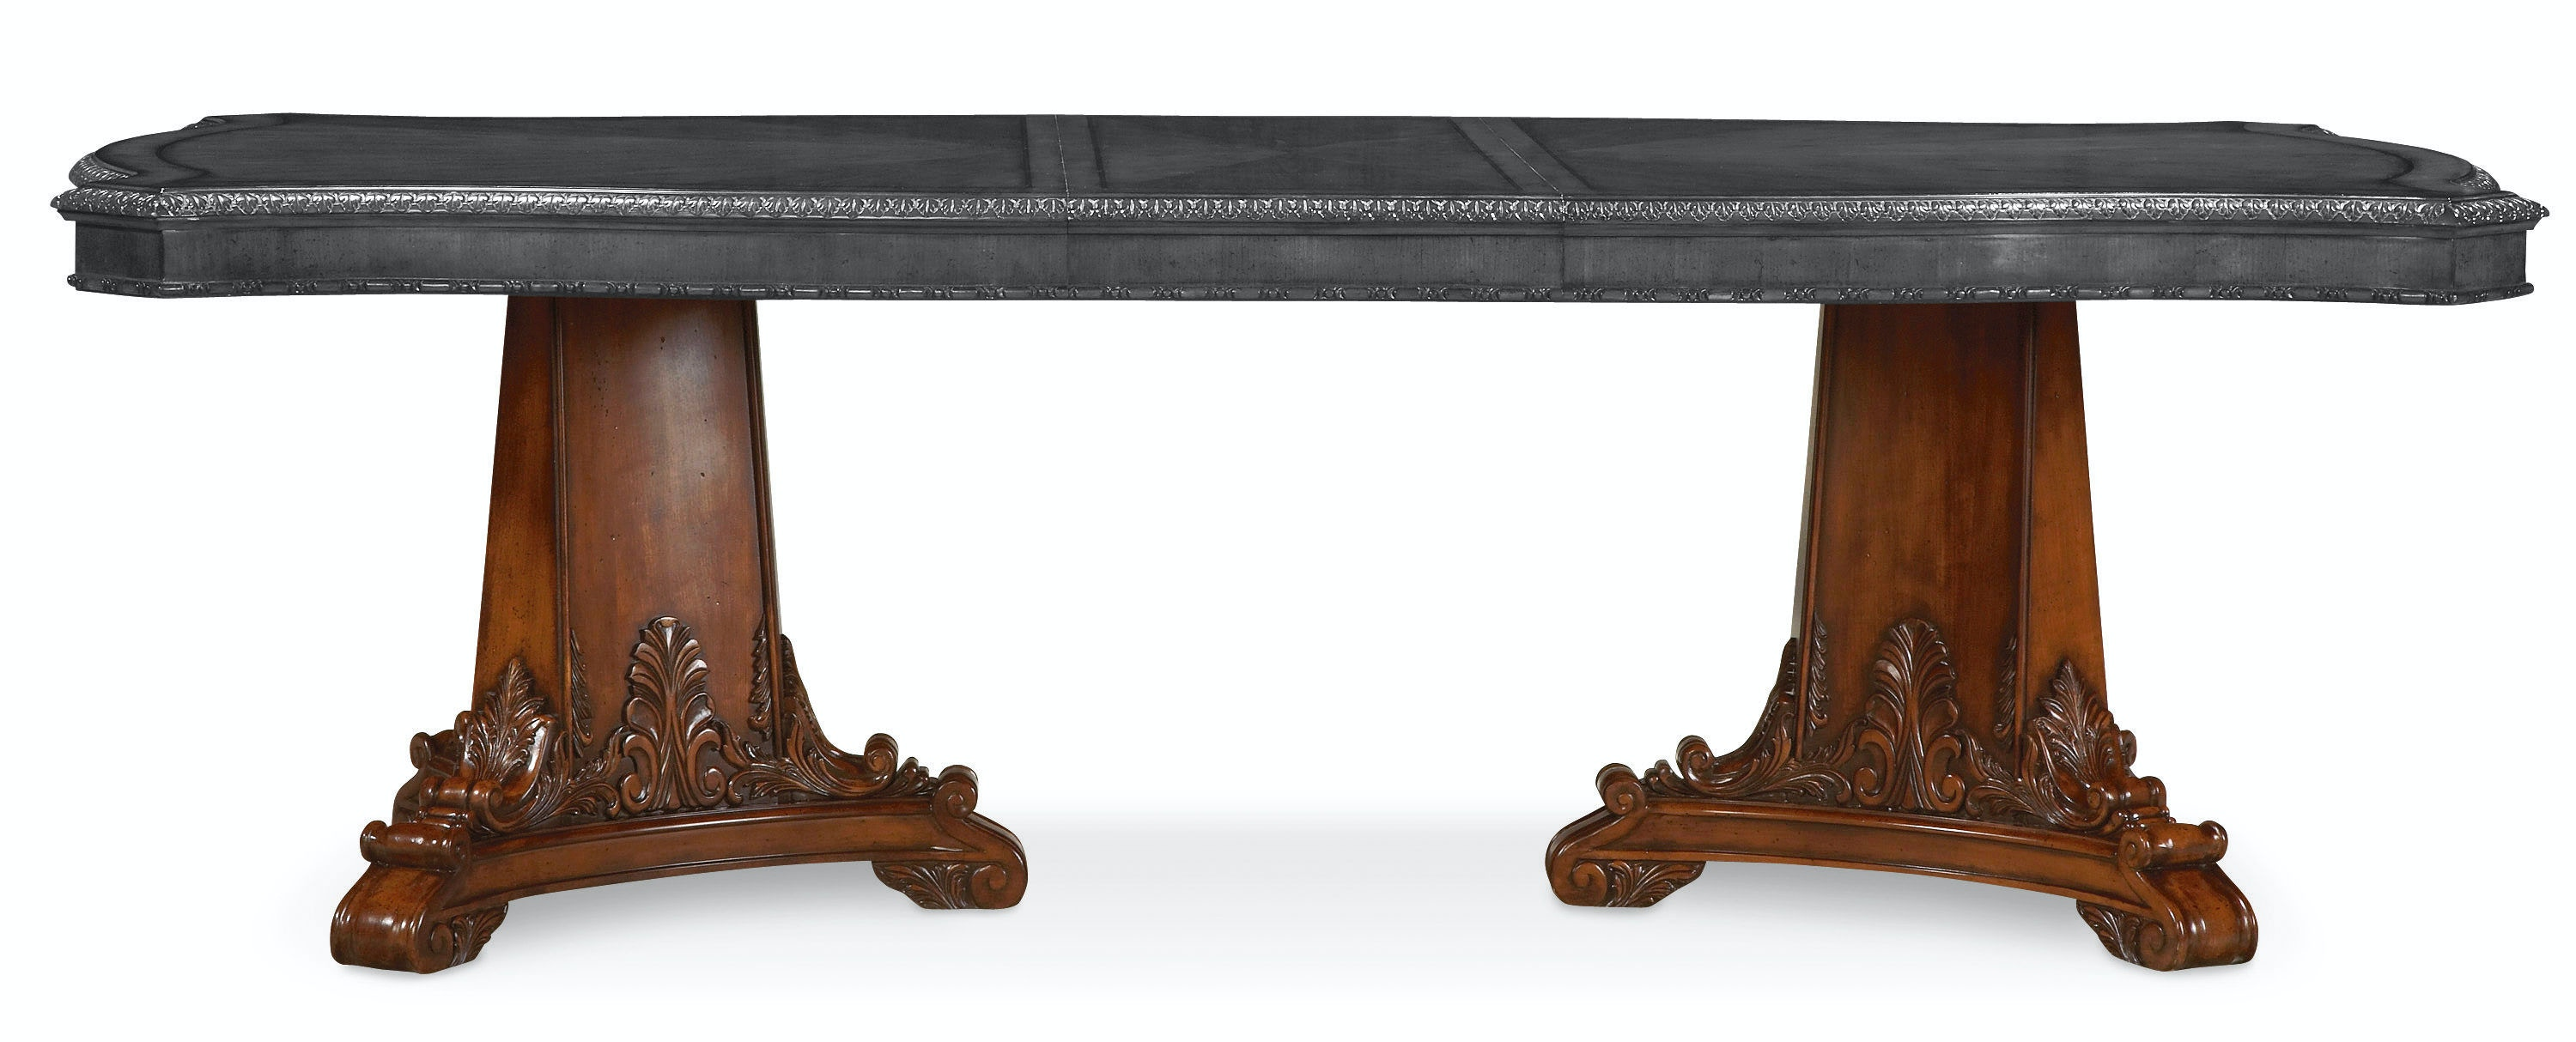 ART Furniture Dining Room Double Pedestal Dining Table Base 143221 2606BS  At American Factory Direct